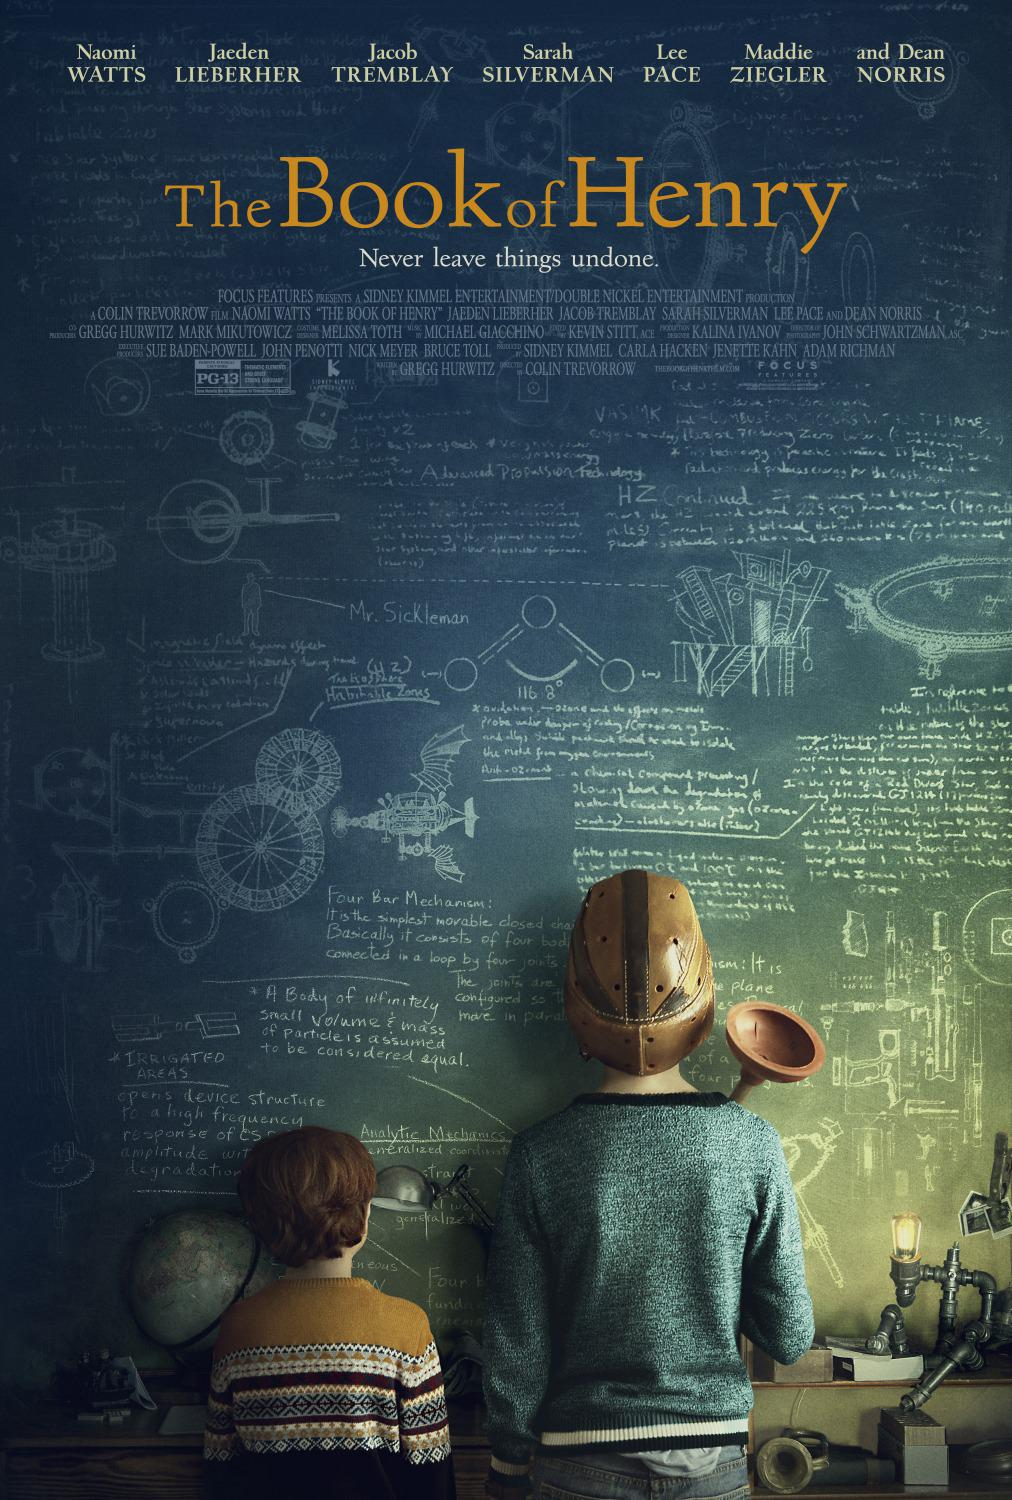 The Book of Henry - Il Libro di Henry - Naomi Watts - Jaeden Lieberher - Jacob Tremblay - Sarah Silverman - Lee Pace - Maddie Ziegler - Dean Norris